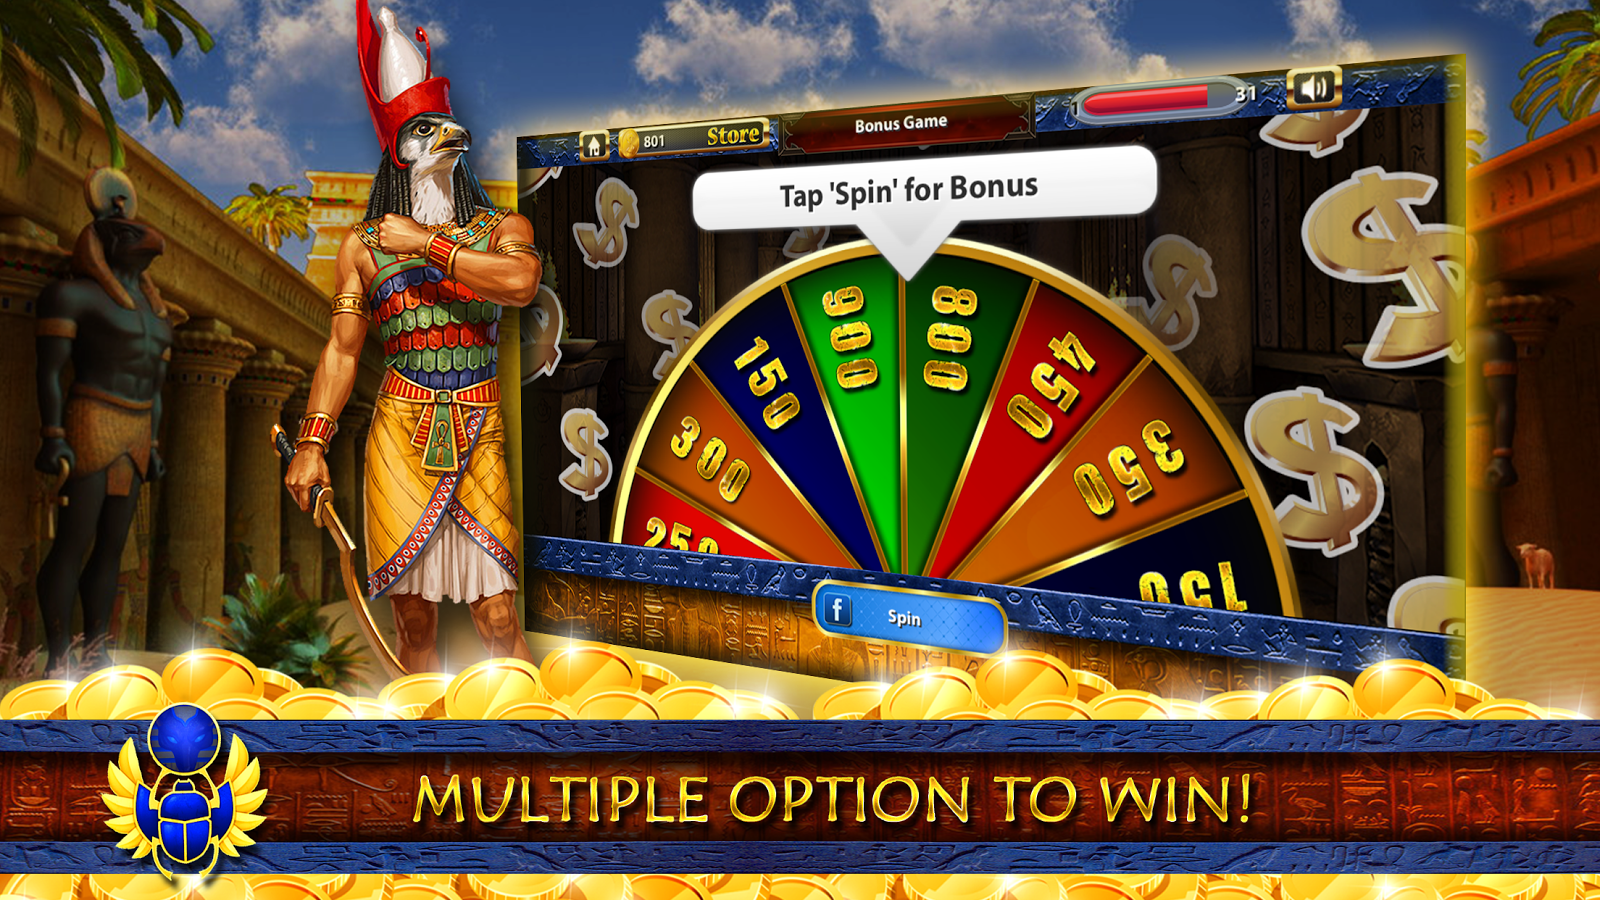 slot games | Euro Palace Casino Blog - Part 4